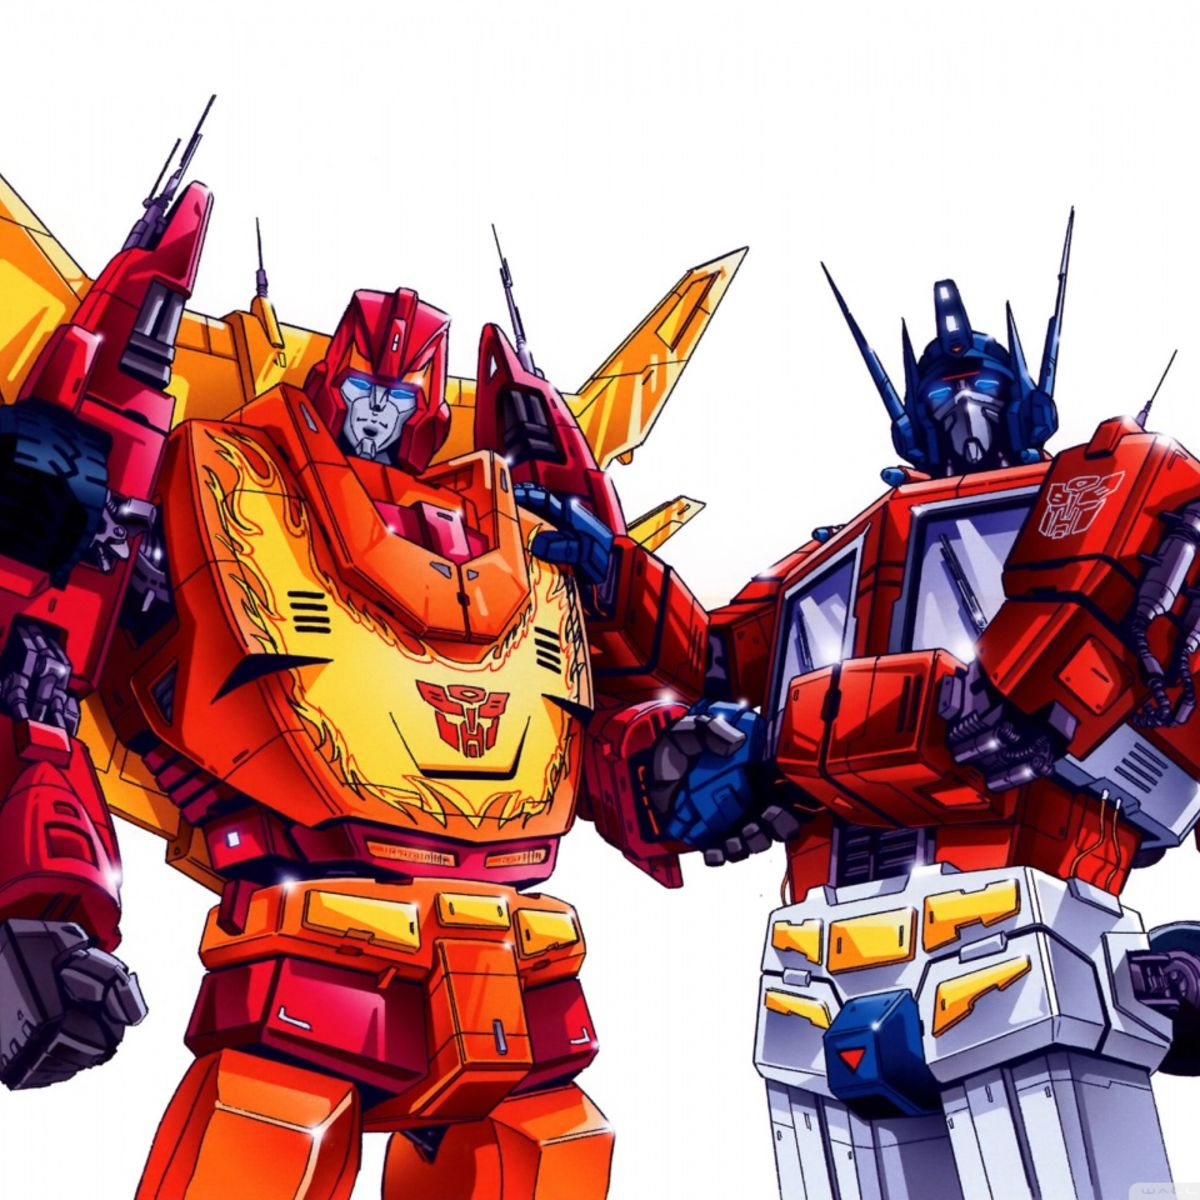 optimus-prime-hot-rod-transformers.jpg